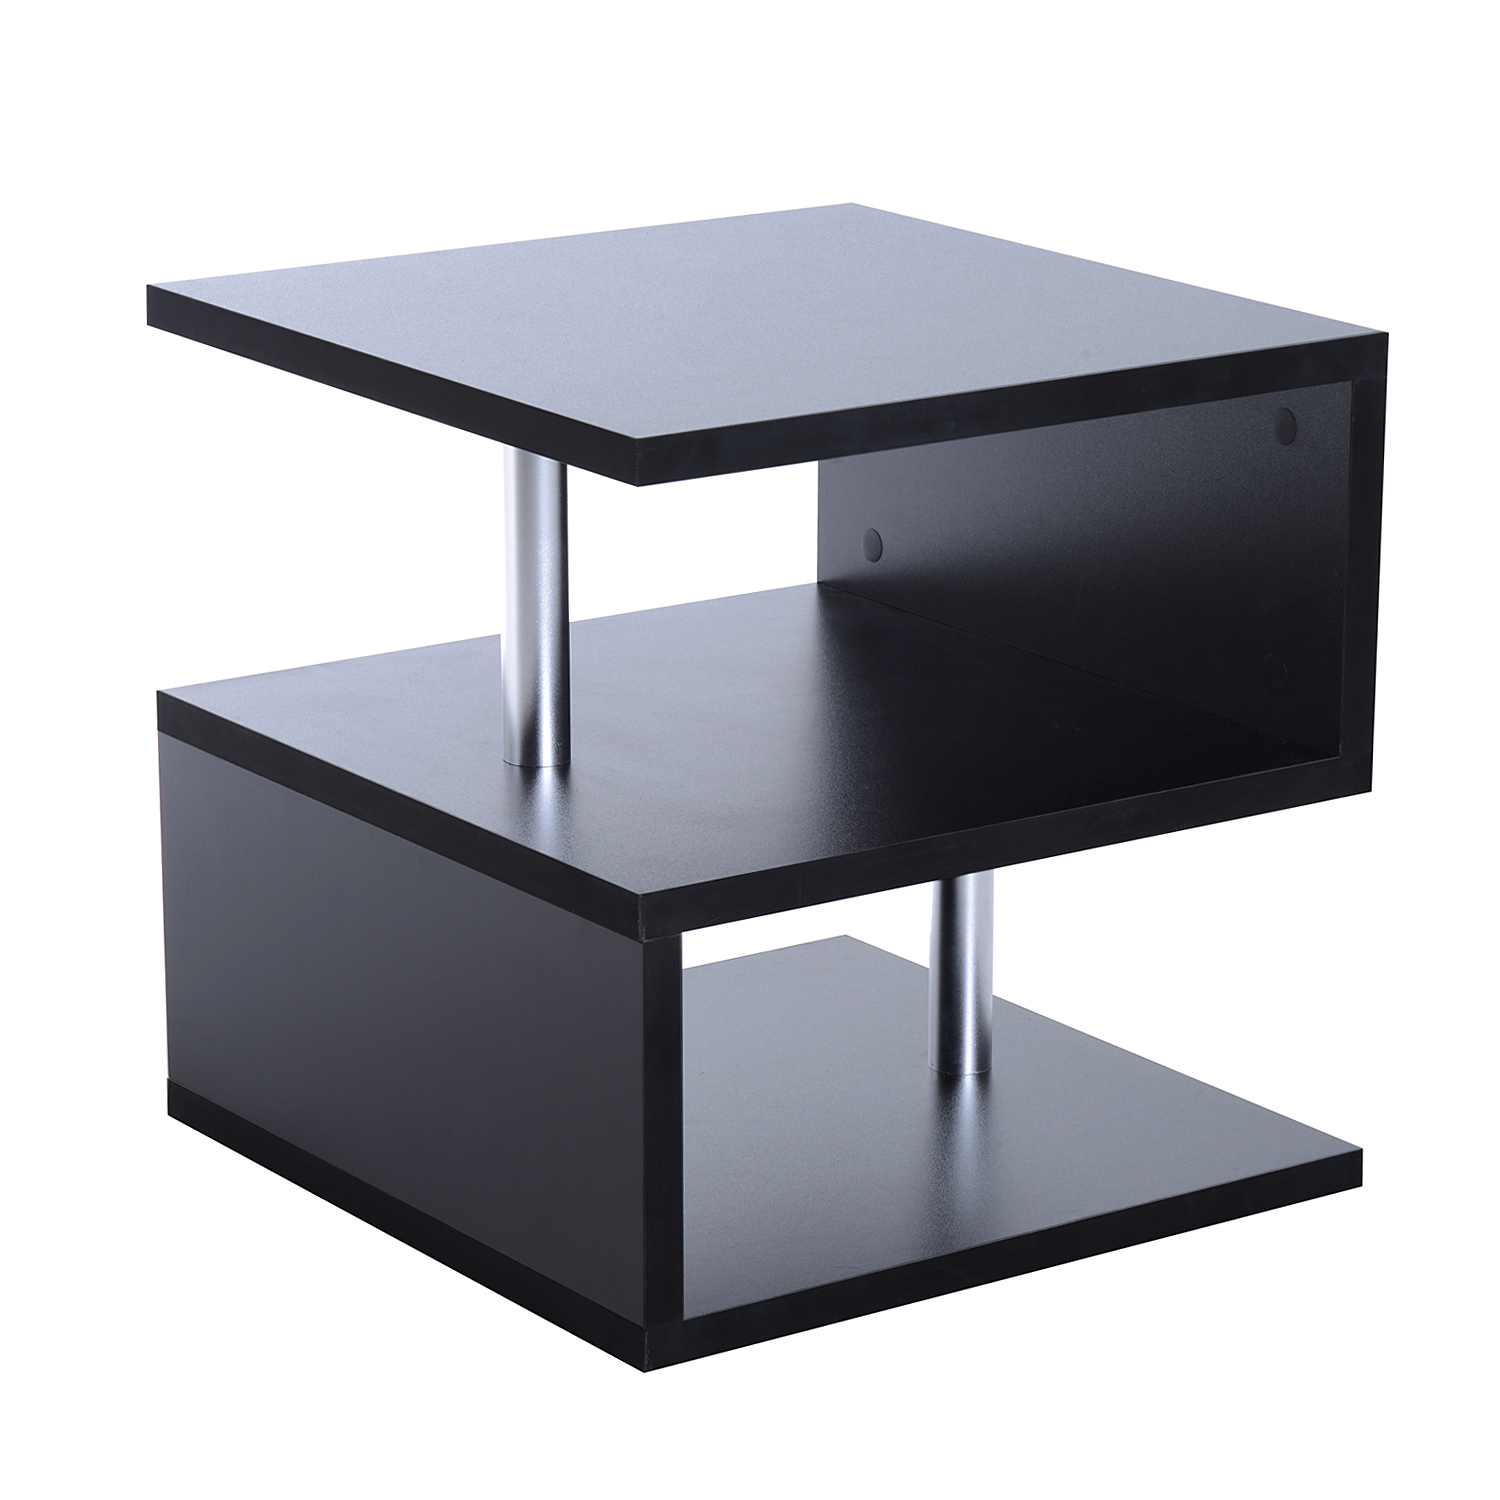 Table Basse Salon Moderne Eur50 75 Homcom Table Basse Carré De Salon Moderne 2 Tagères